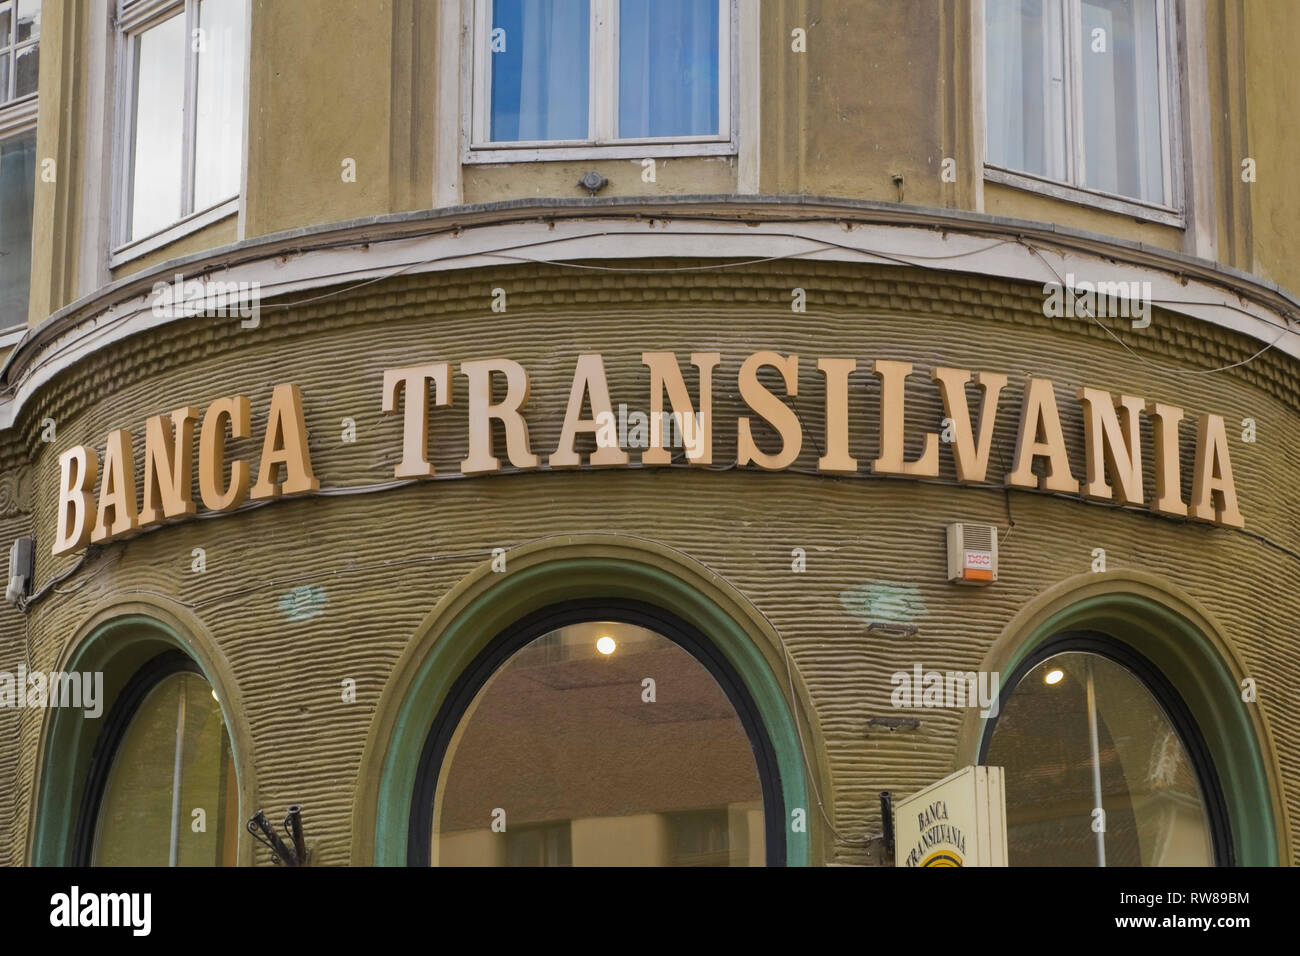 Banca Transilvania financial institution building facade, Brasov, Romania, Eastern Europe - Stock Image